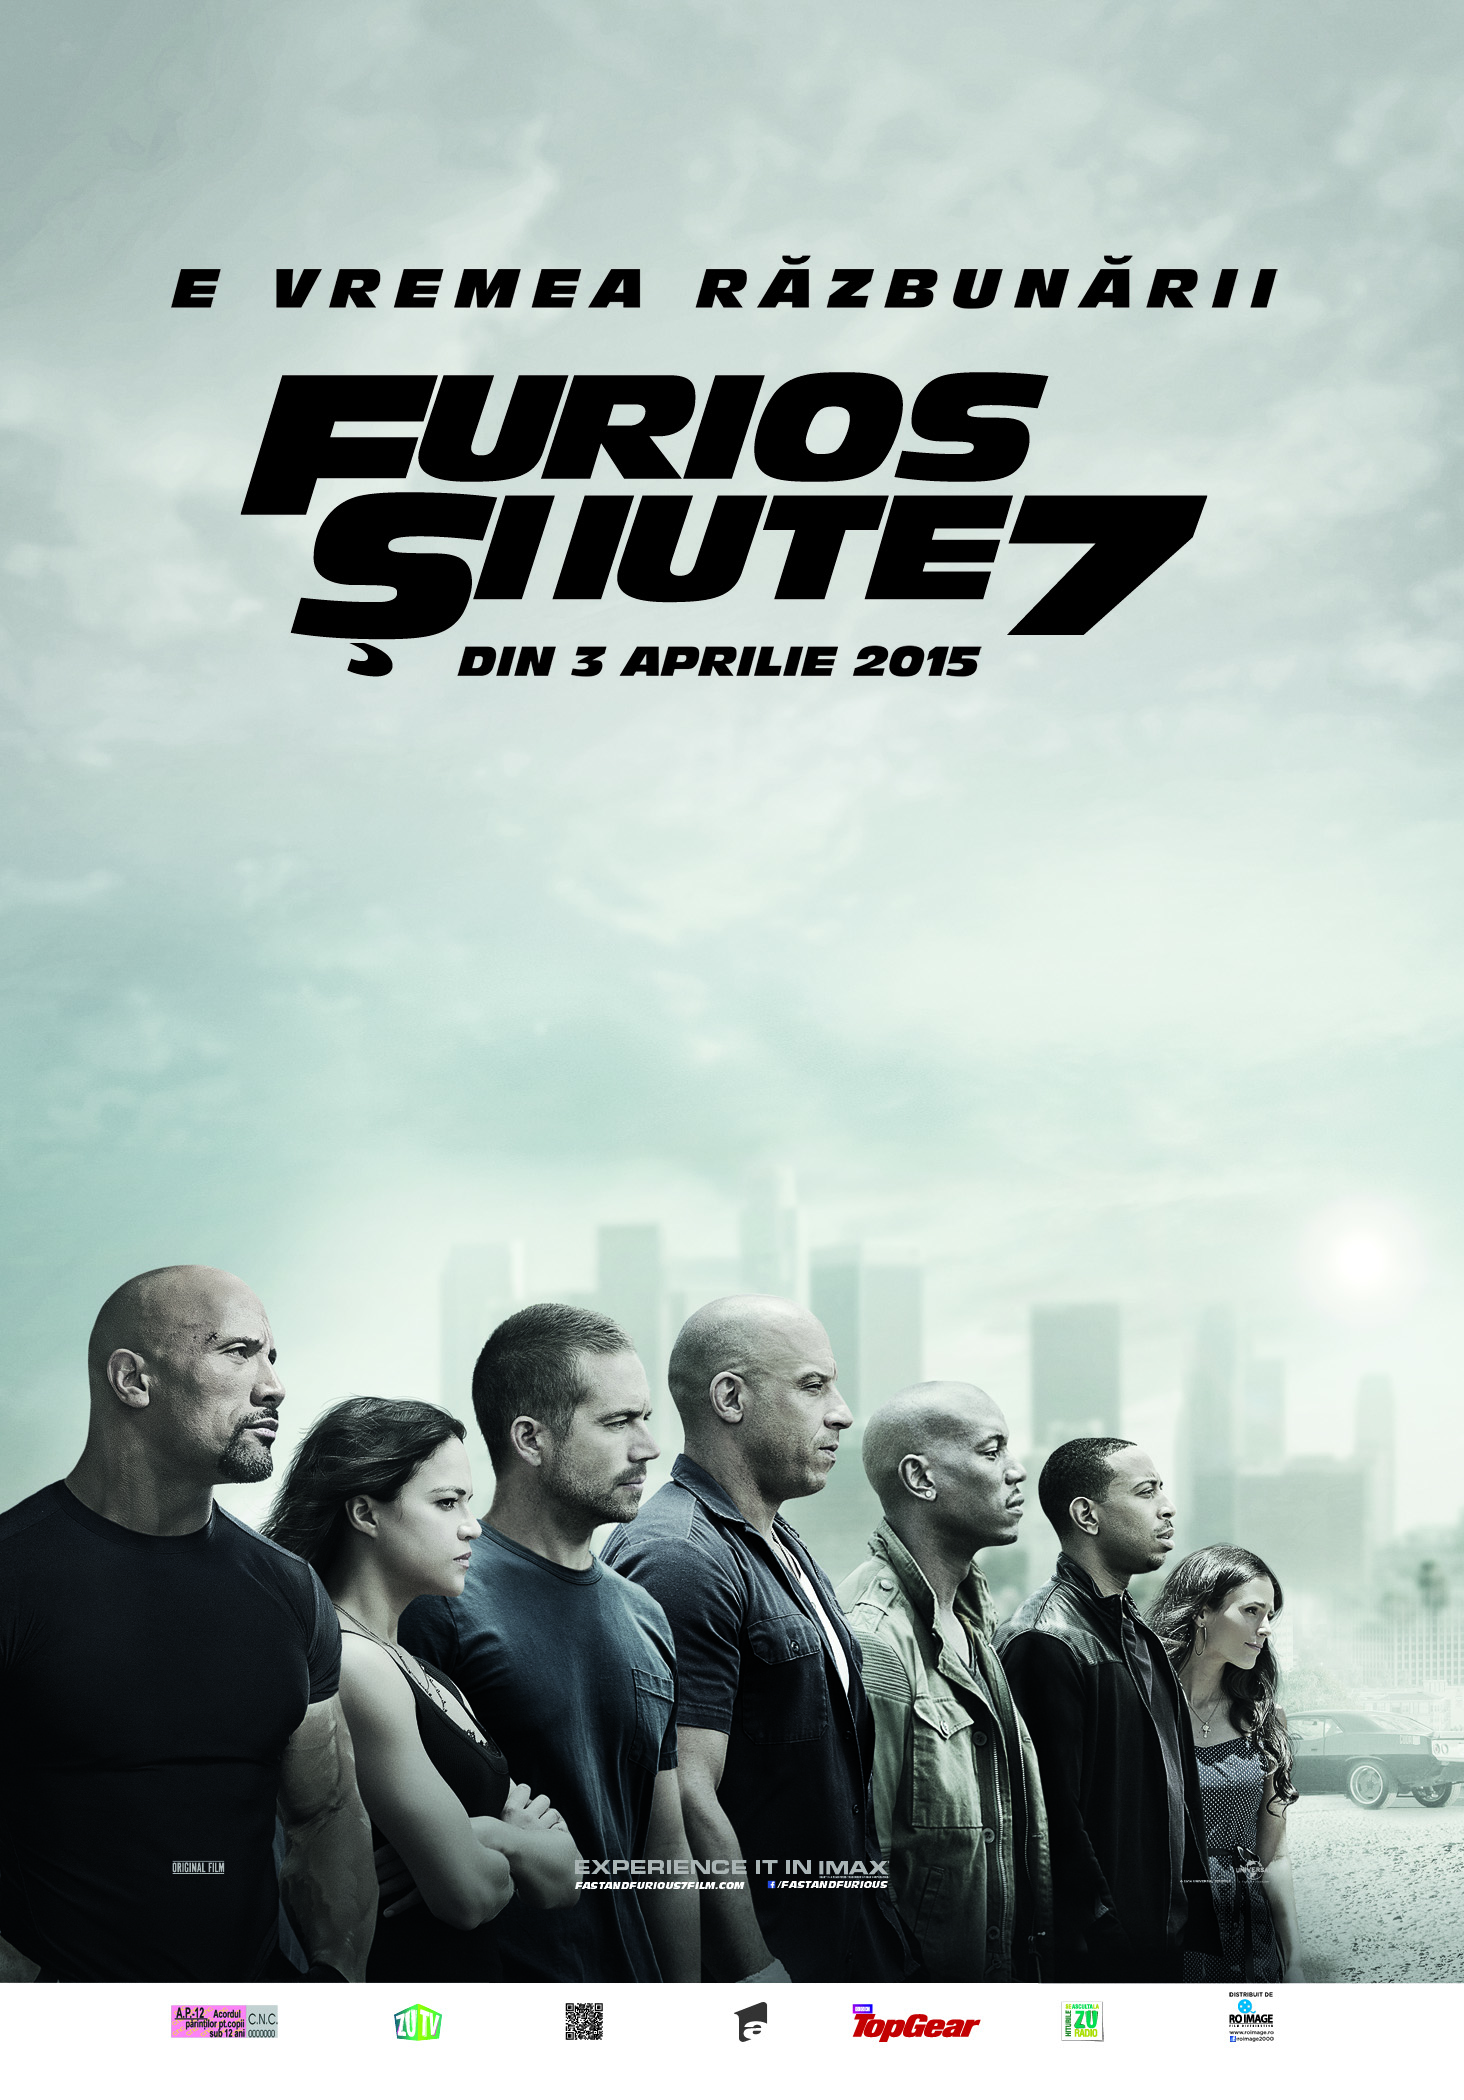 Furios si iute 7 / Fast and Furious 7 (Premiera)